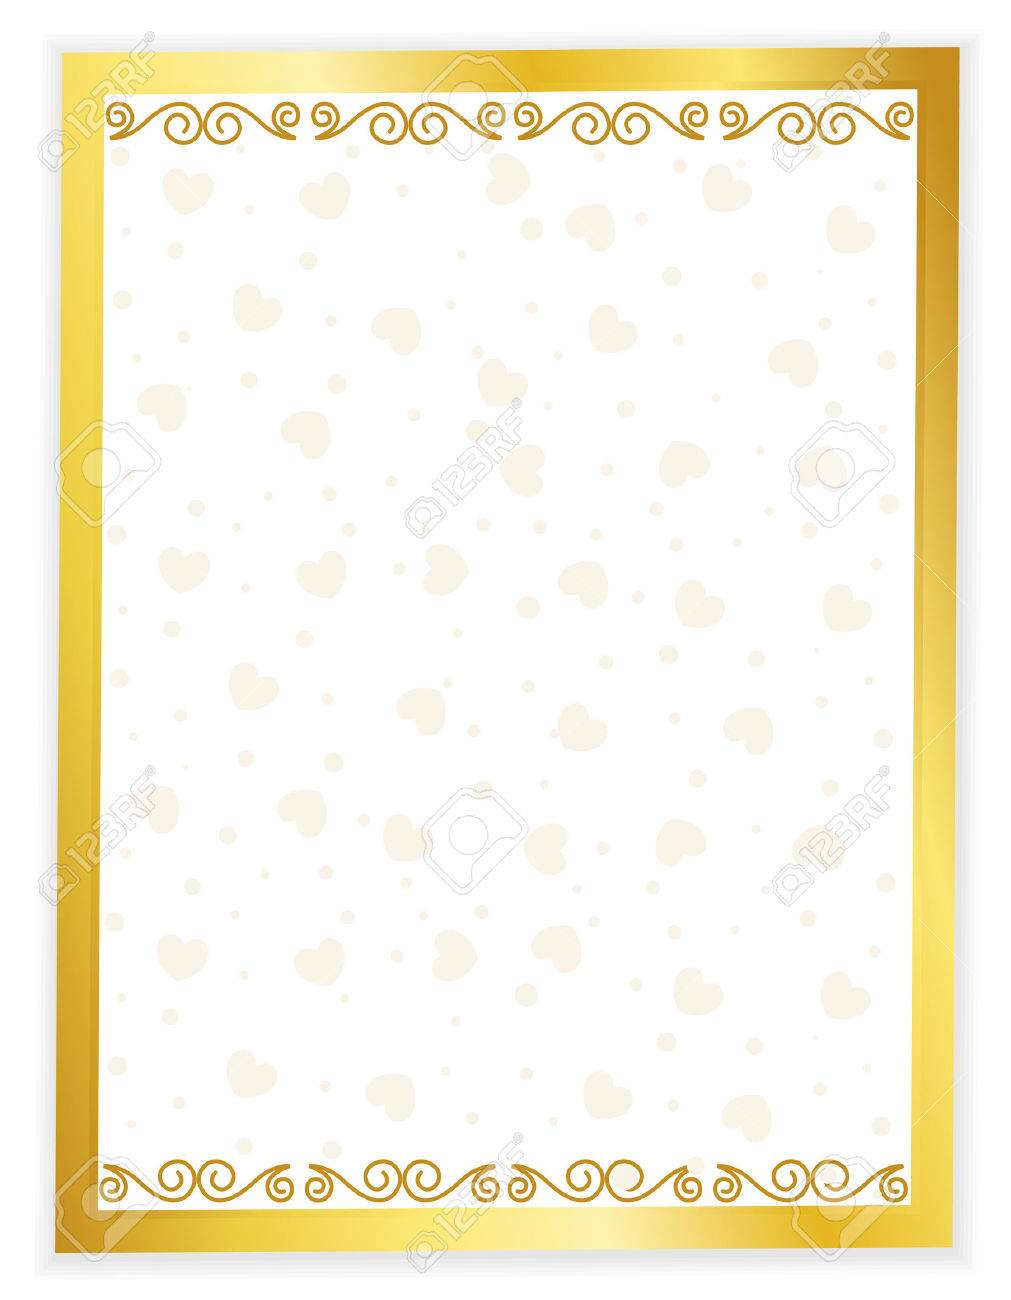 Gold Framed Wedding Invitation Background With Hearts Seamless